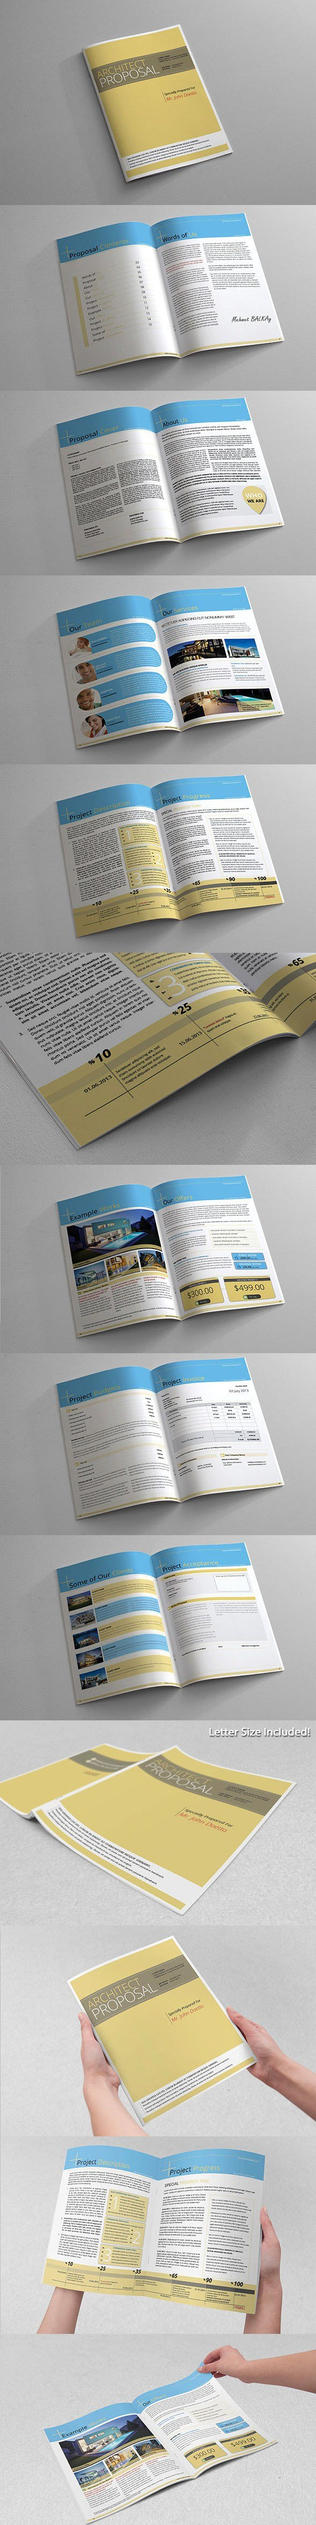 Project Proposal Template by BALKAy